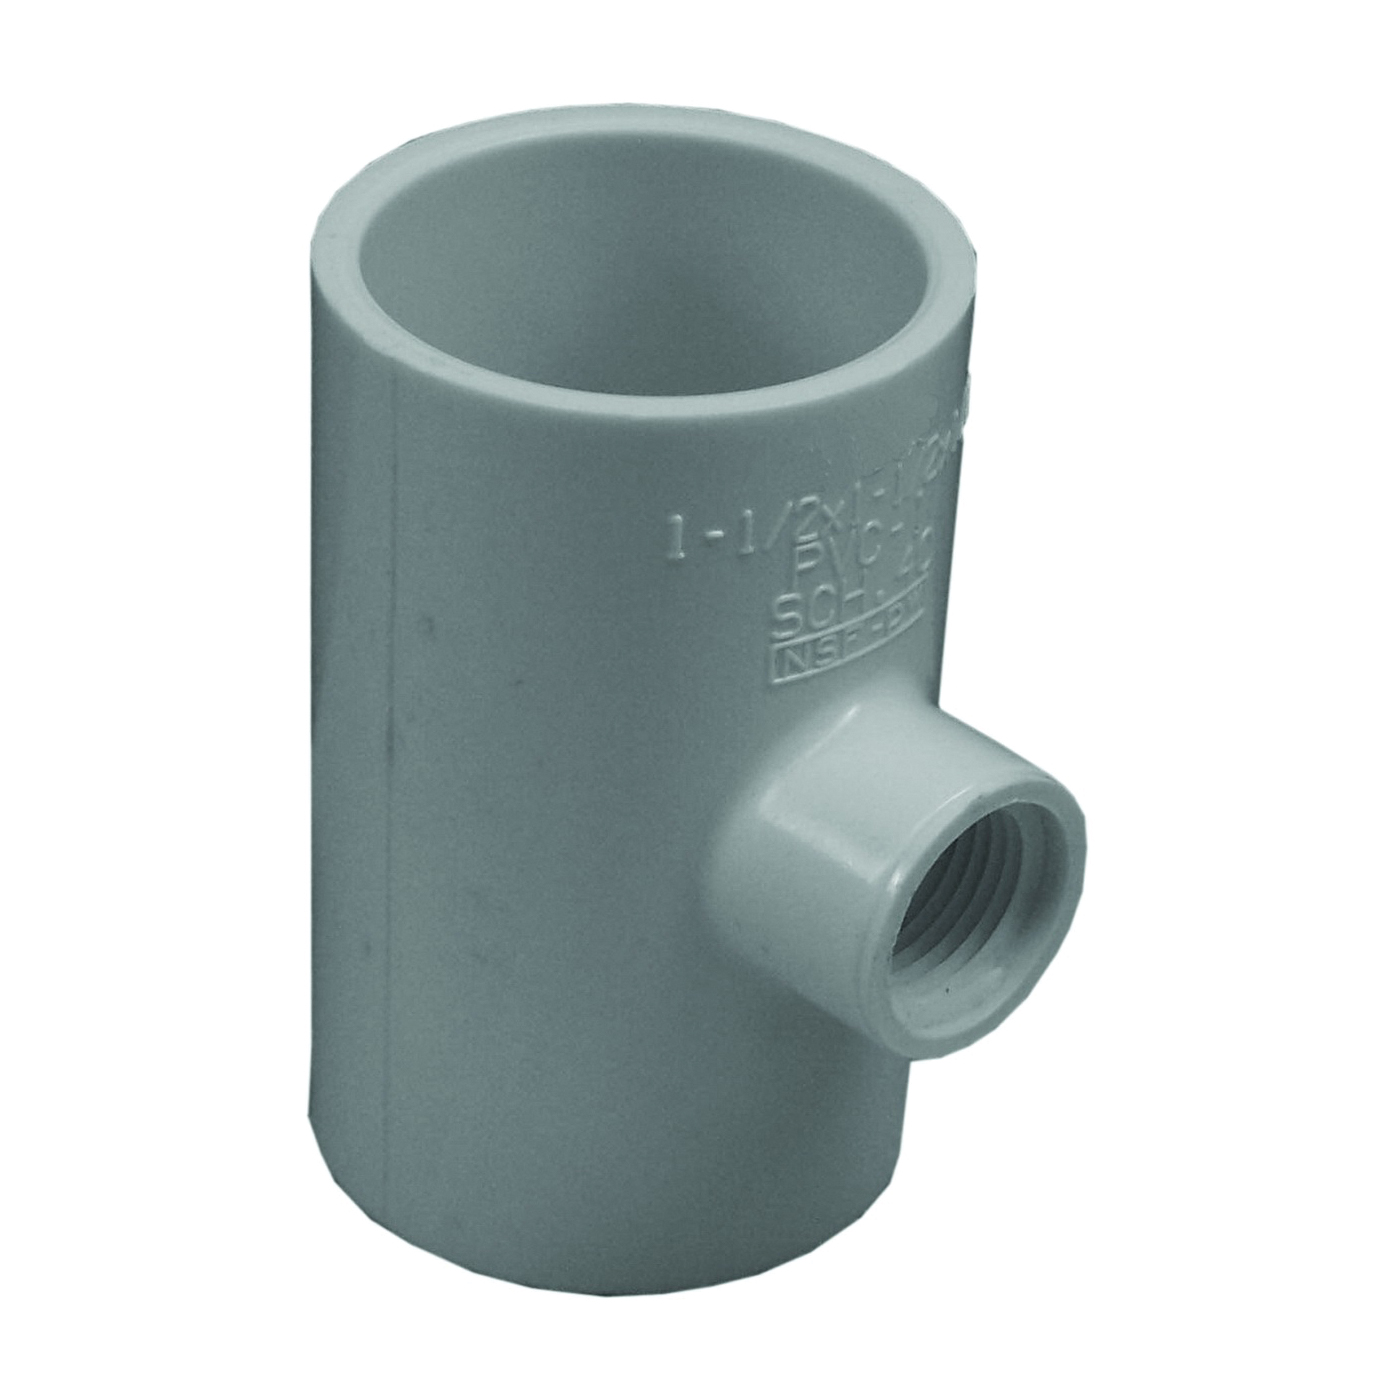 Picture of GENOVA 300 Series 31478 Pipe Reducing Tee, 1-1/2 in Run, Slip Run Connection, 1/2 in Branch, White